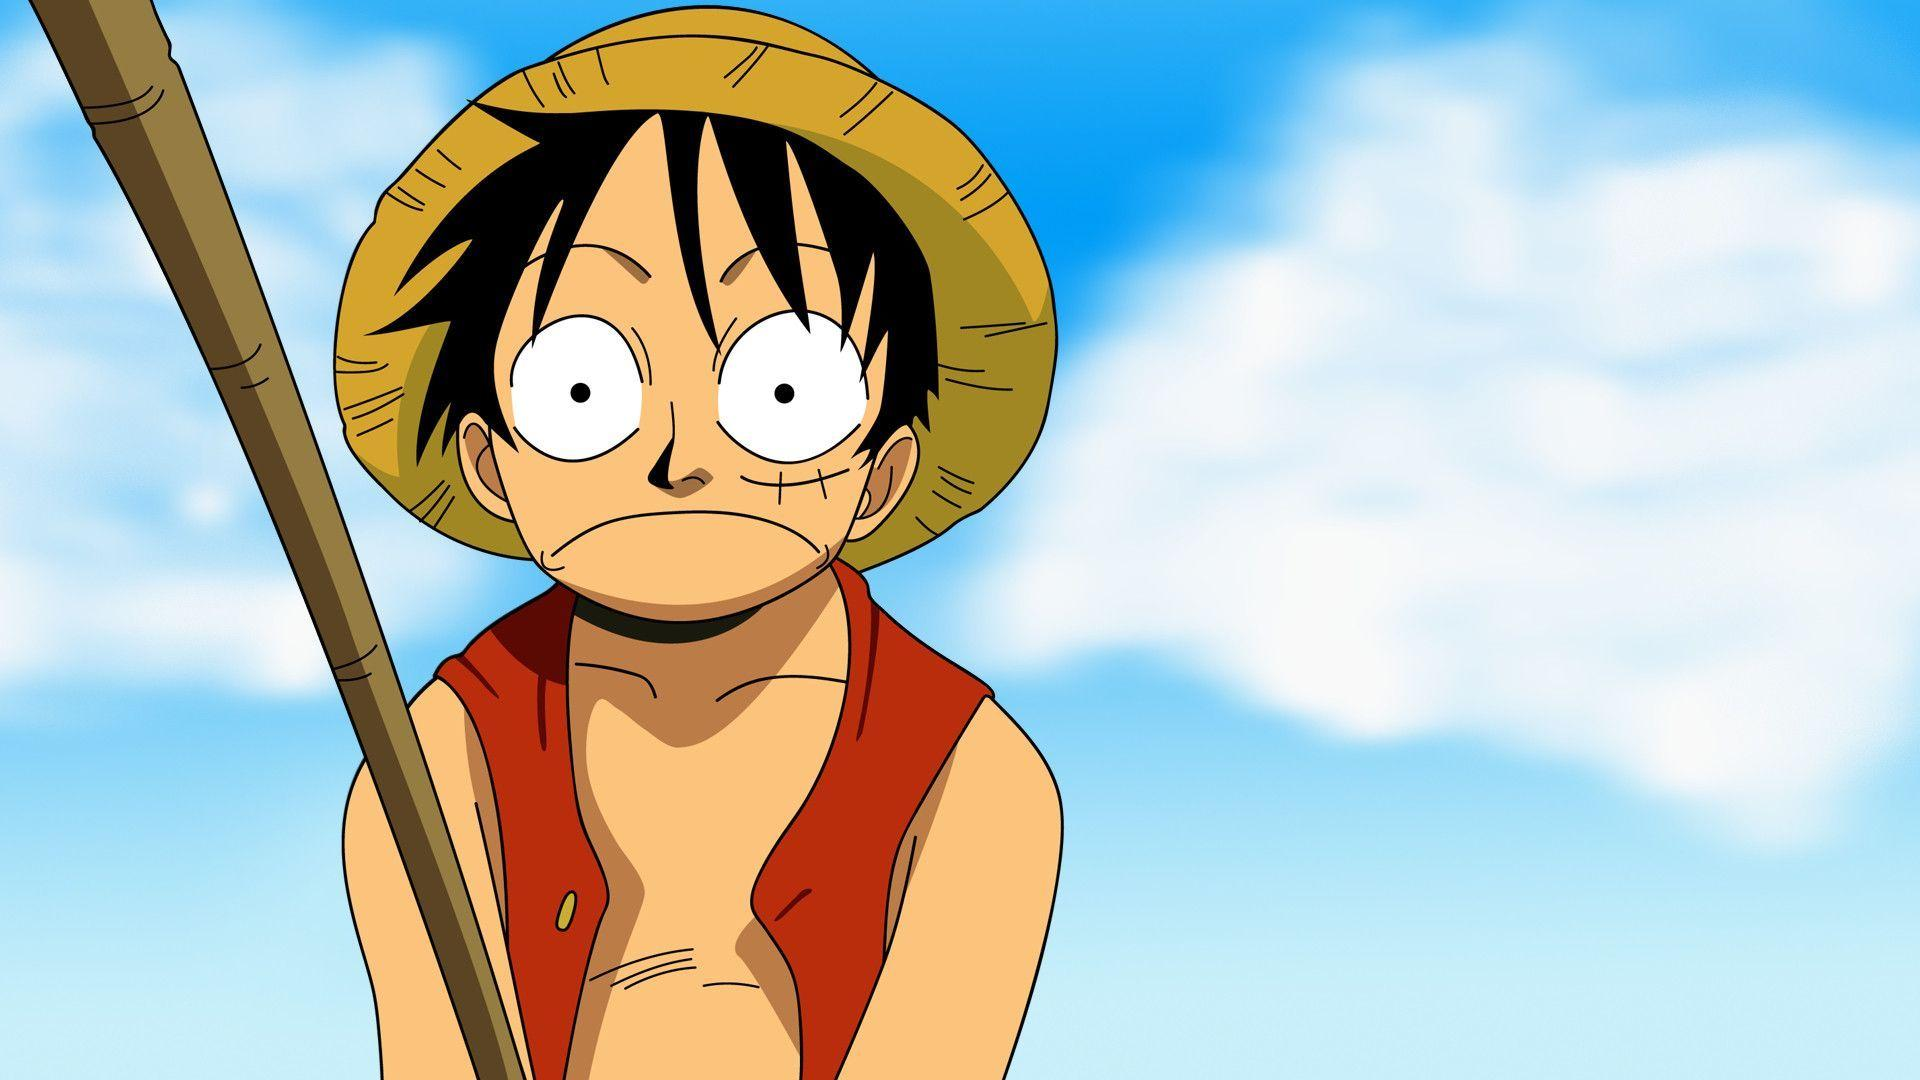 Luffy One Piece Backgrounds 20119 Full HD Wallpapers Desktop